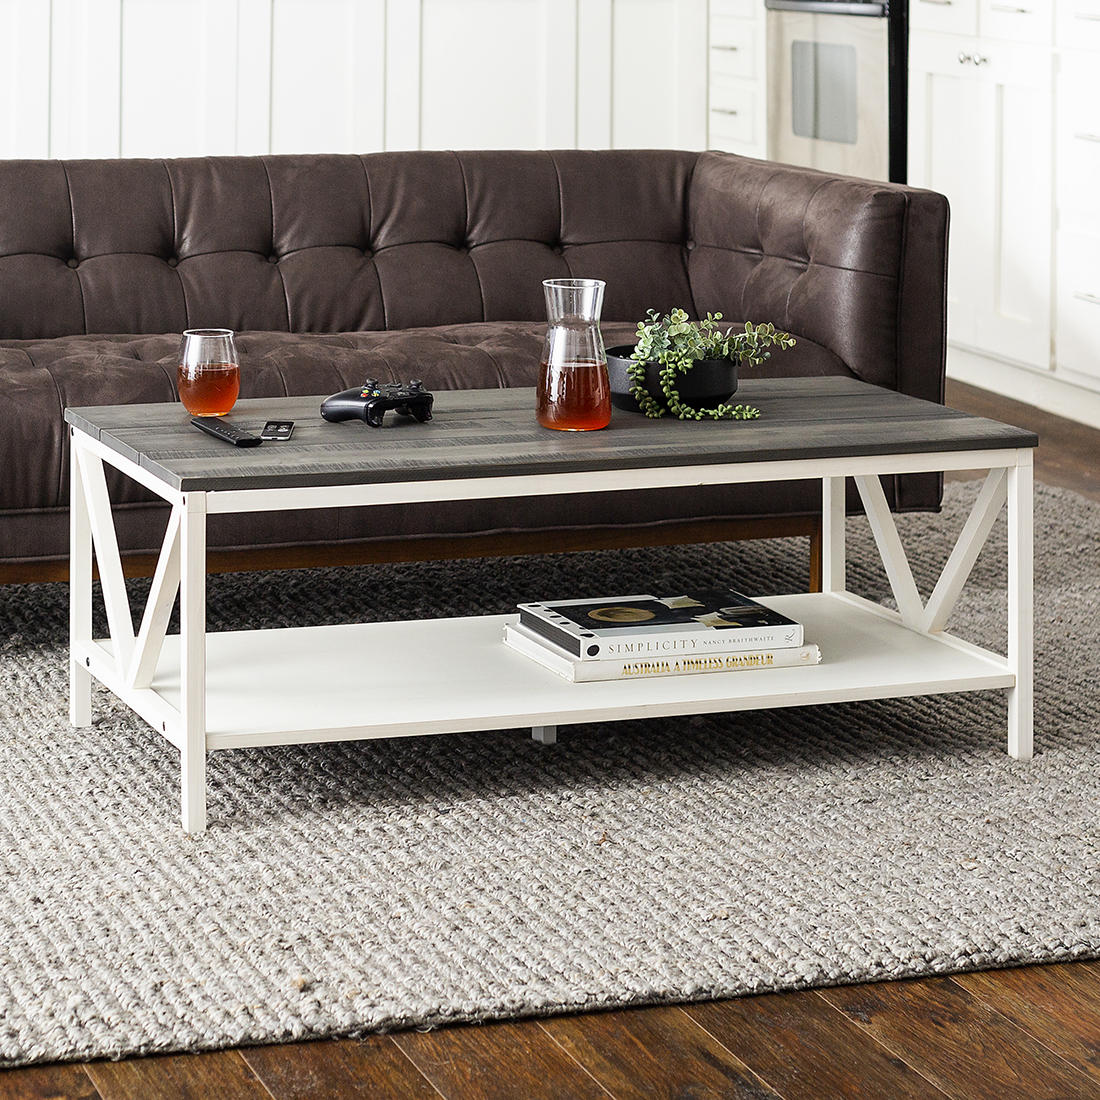 w trends 48 distressed farmhouse solid wood coffee table gray and white wash